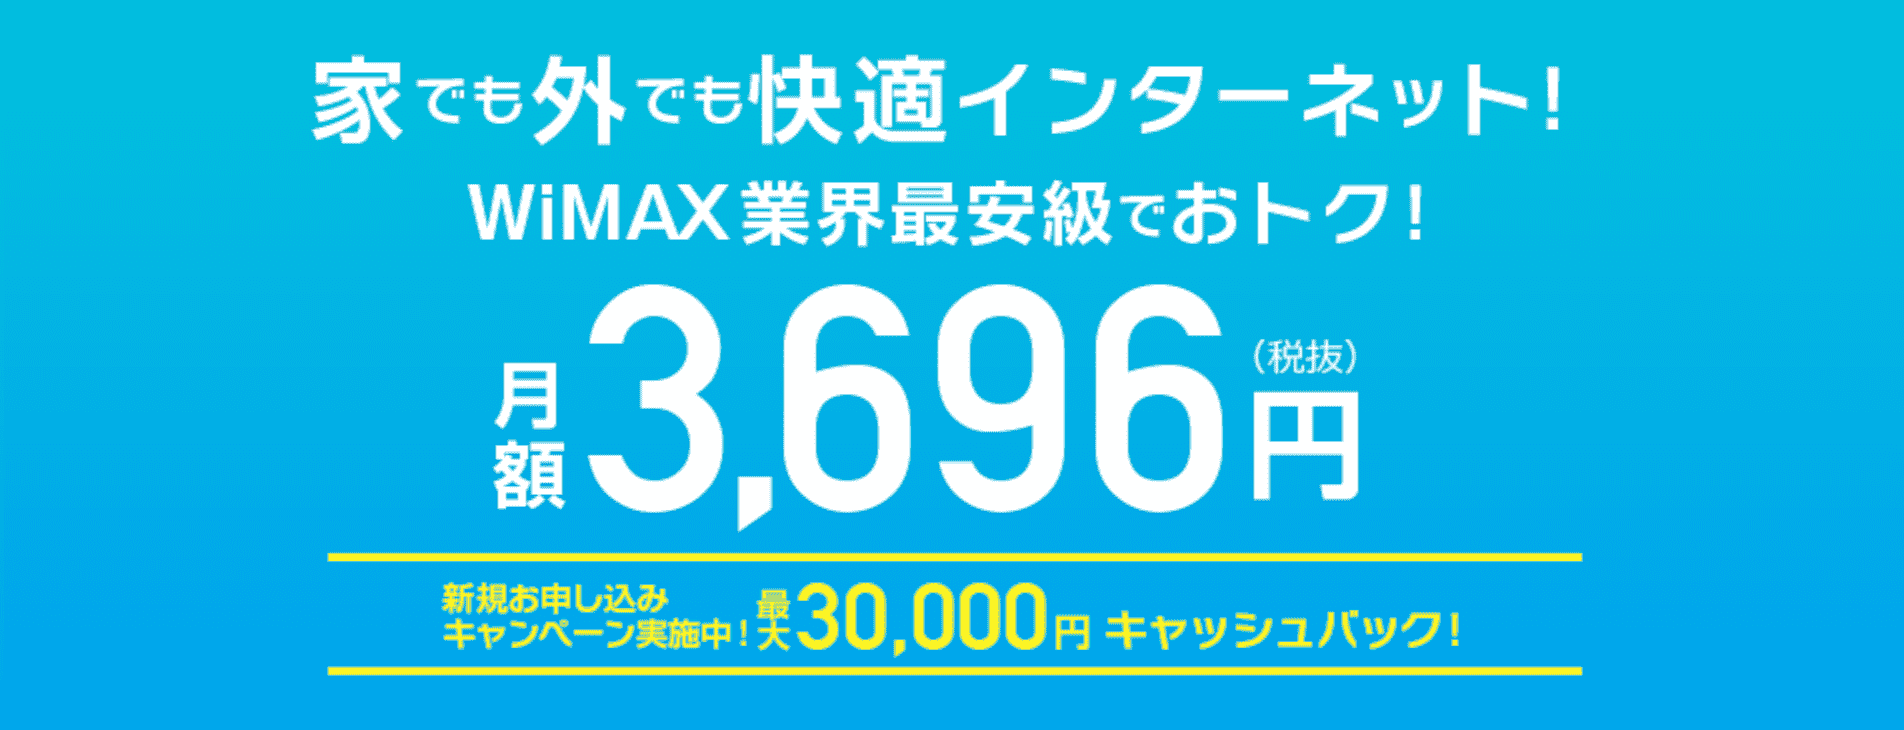 Drive WiMAXのキャンペーン